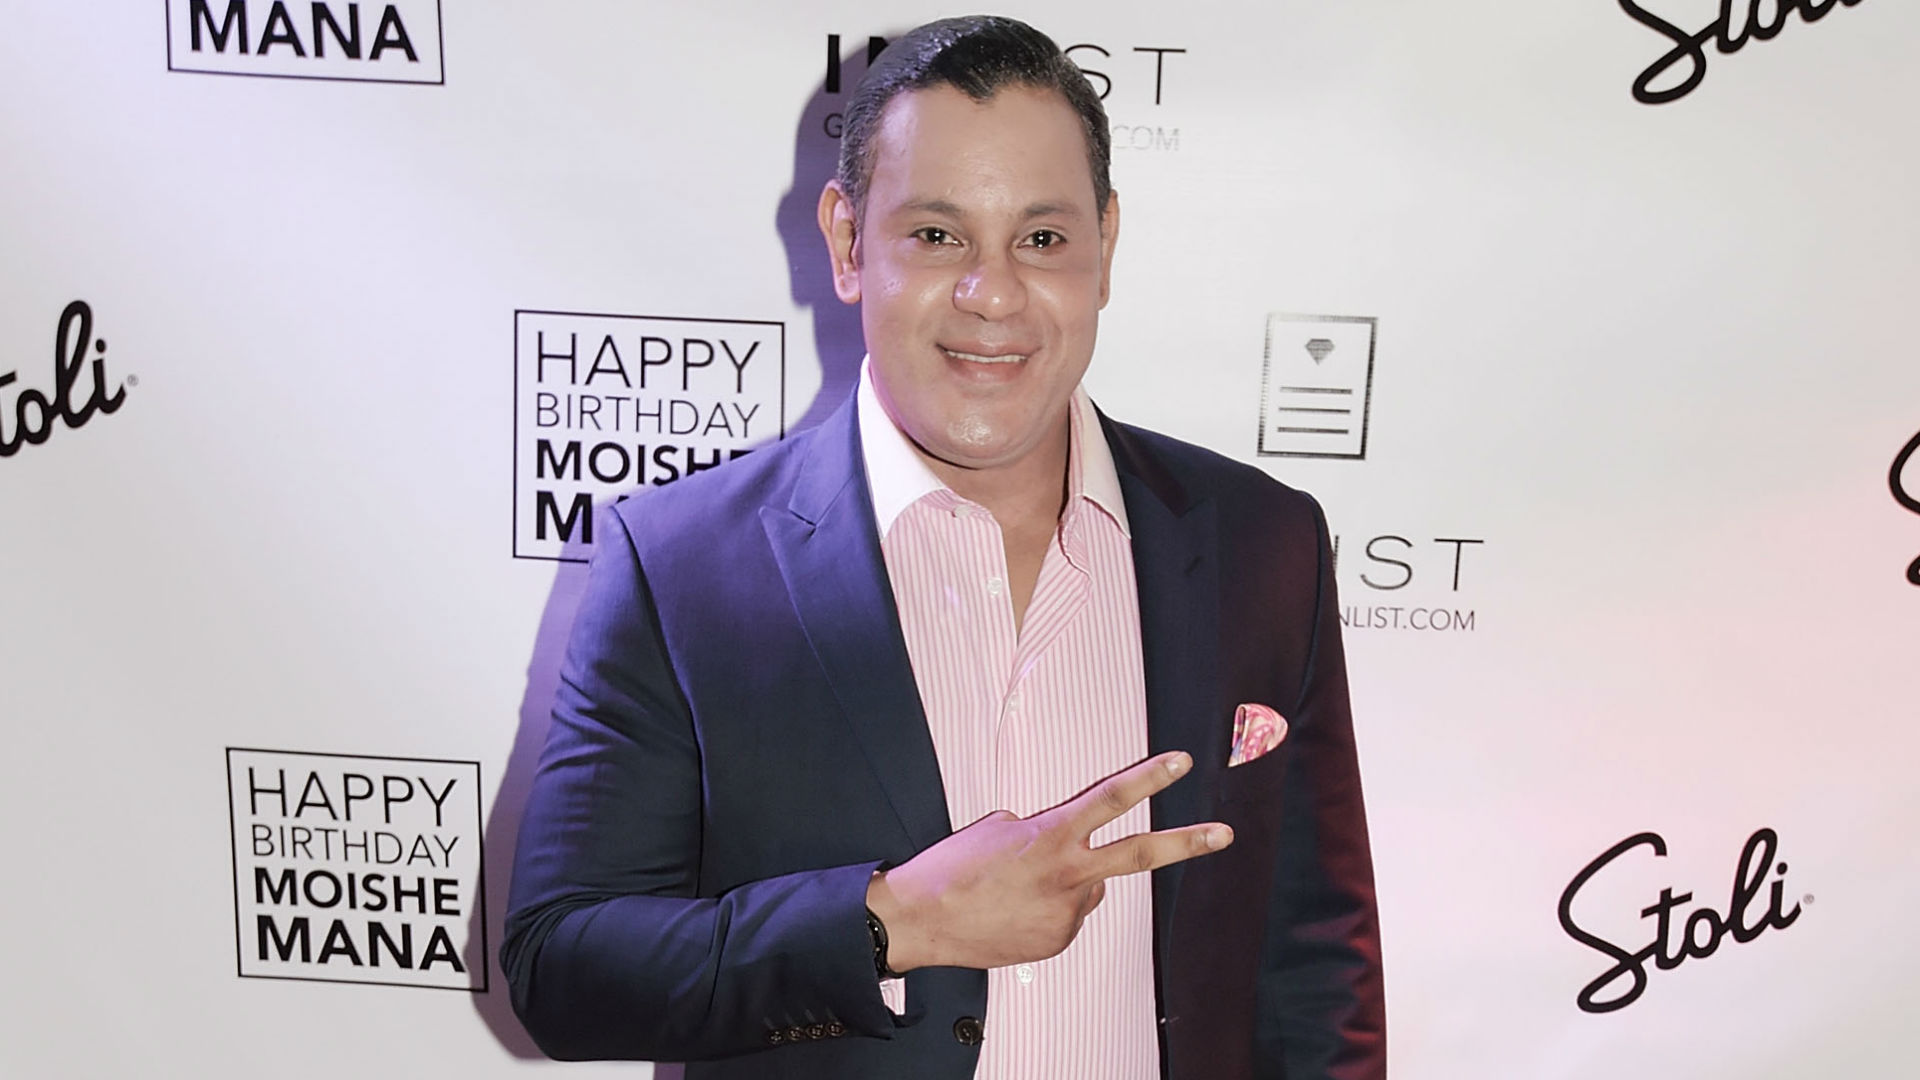 Fans React to Sammy Sosa's WHITER, er, PINK-ER(?) Complexion Transition